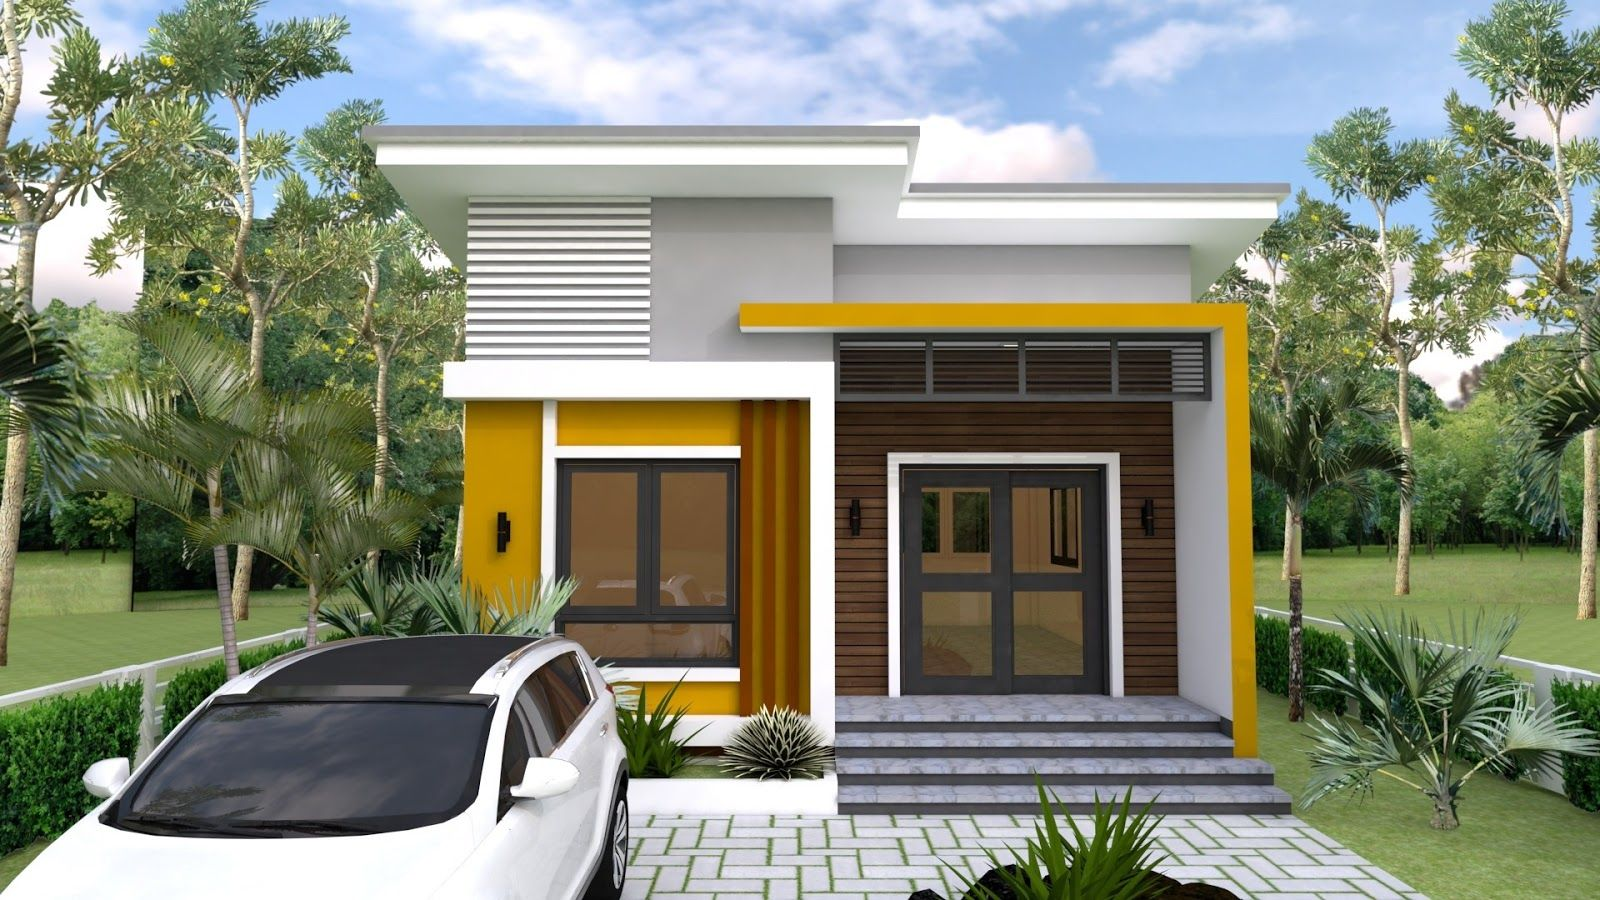 2 Bedroom House Plans Indian Style Best House Plan Design Small House Design Bungalow House Design Small House Plans